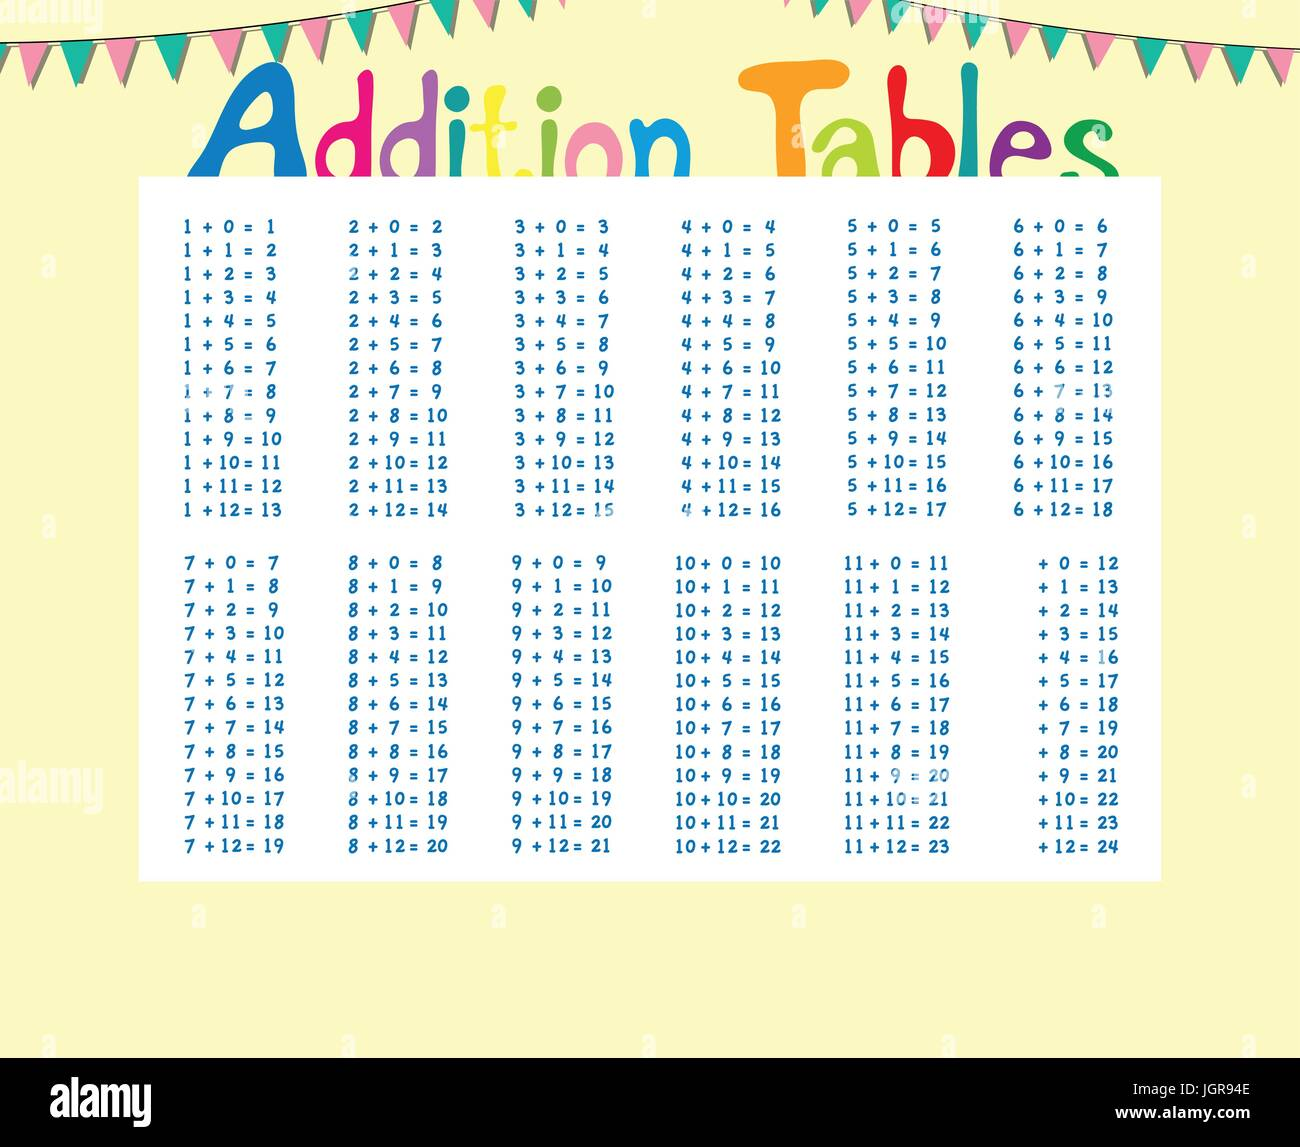 Addition Tables Chart With Kids In Background Illustration